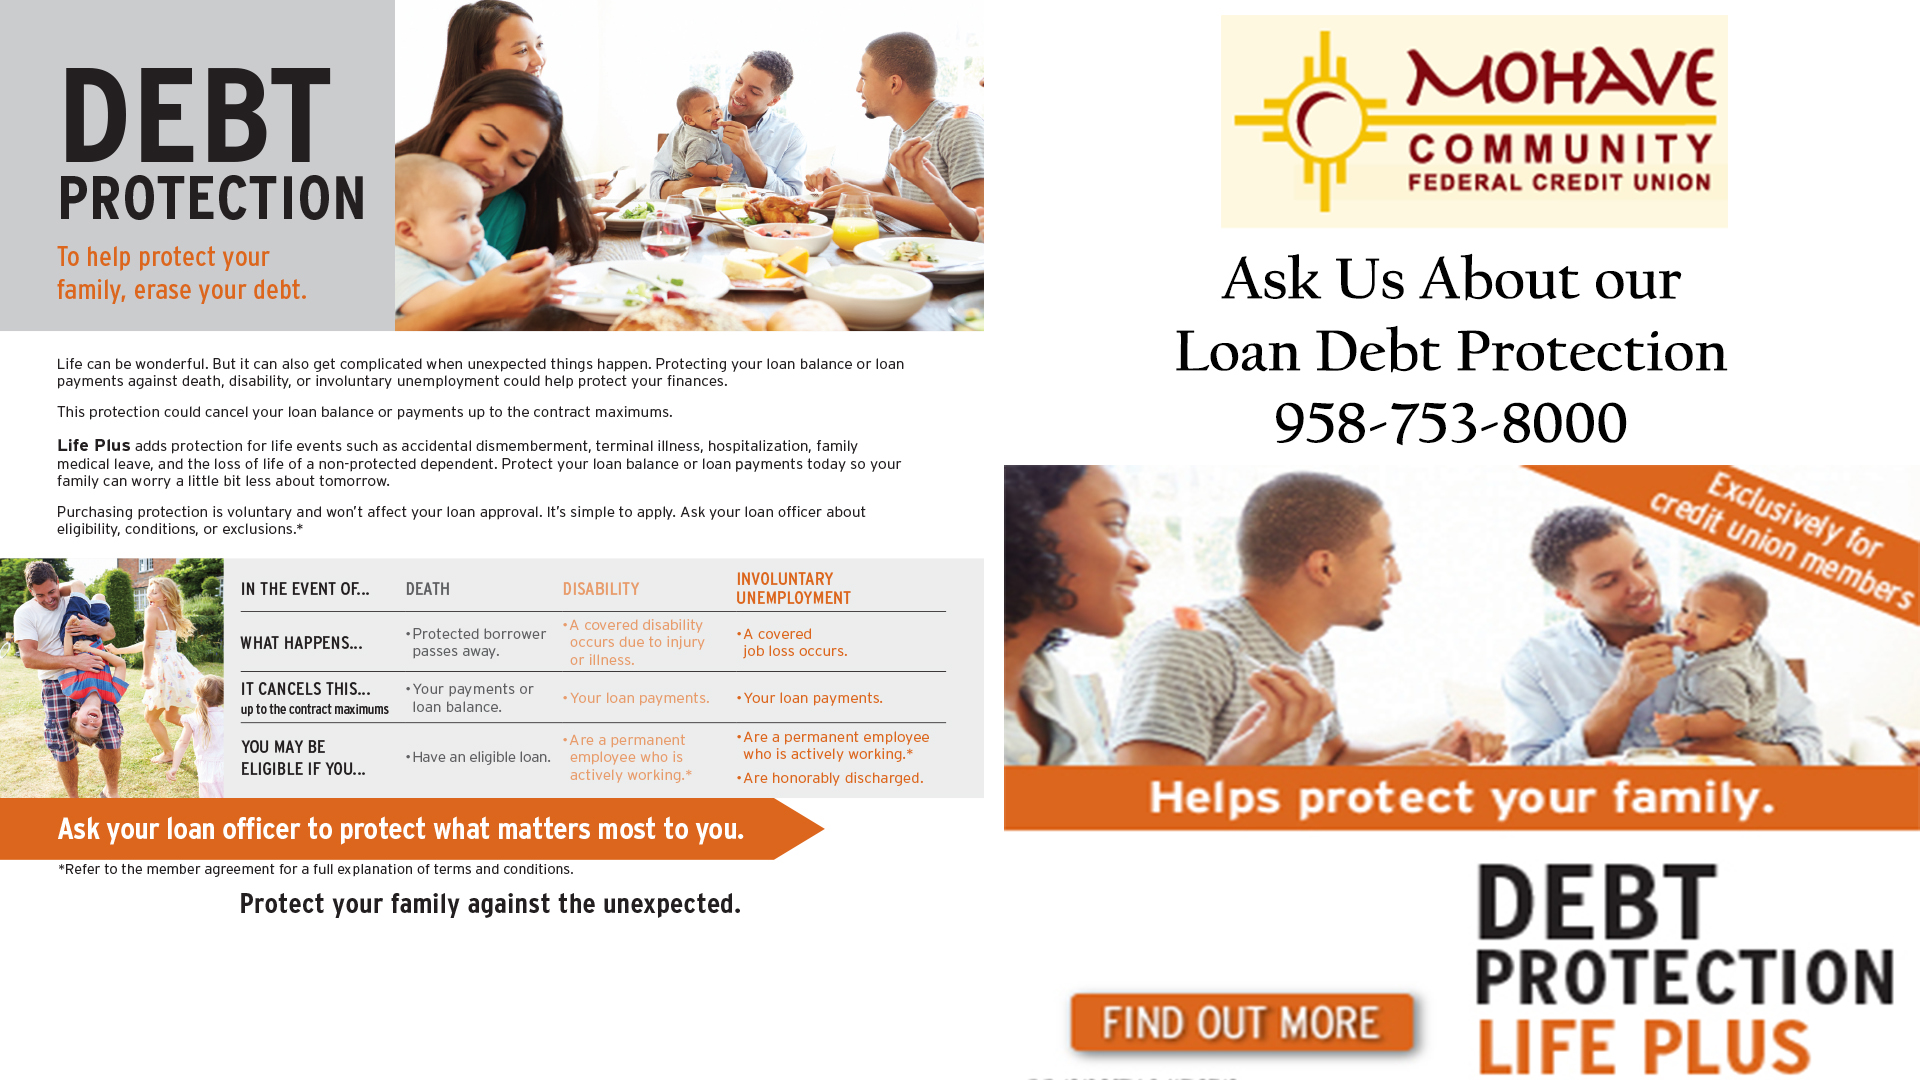 Debt Protection Life Plus